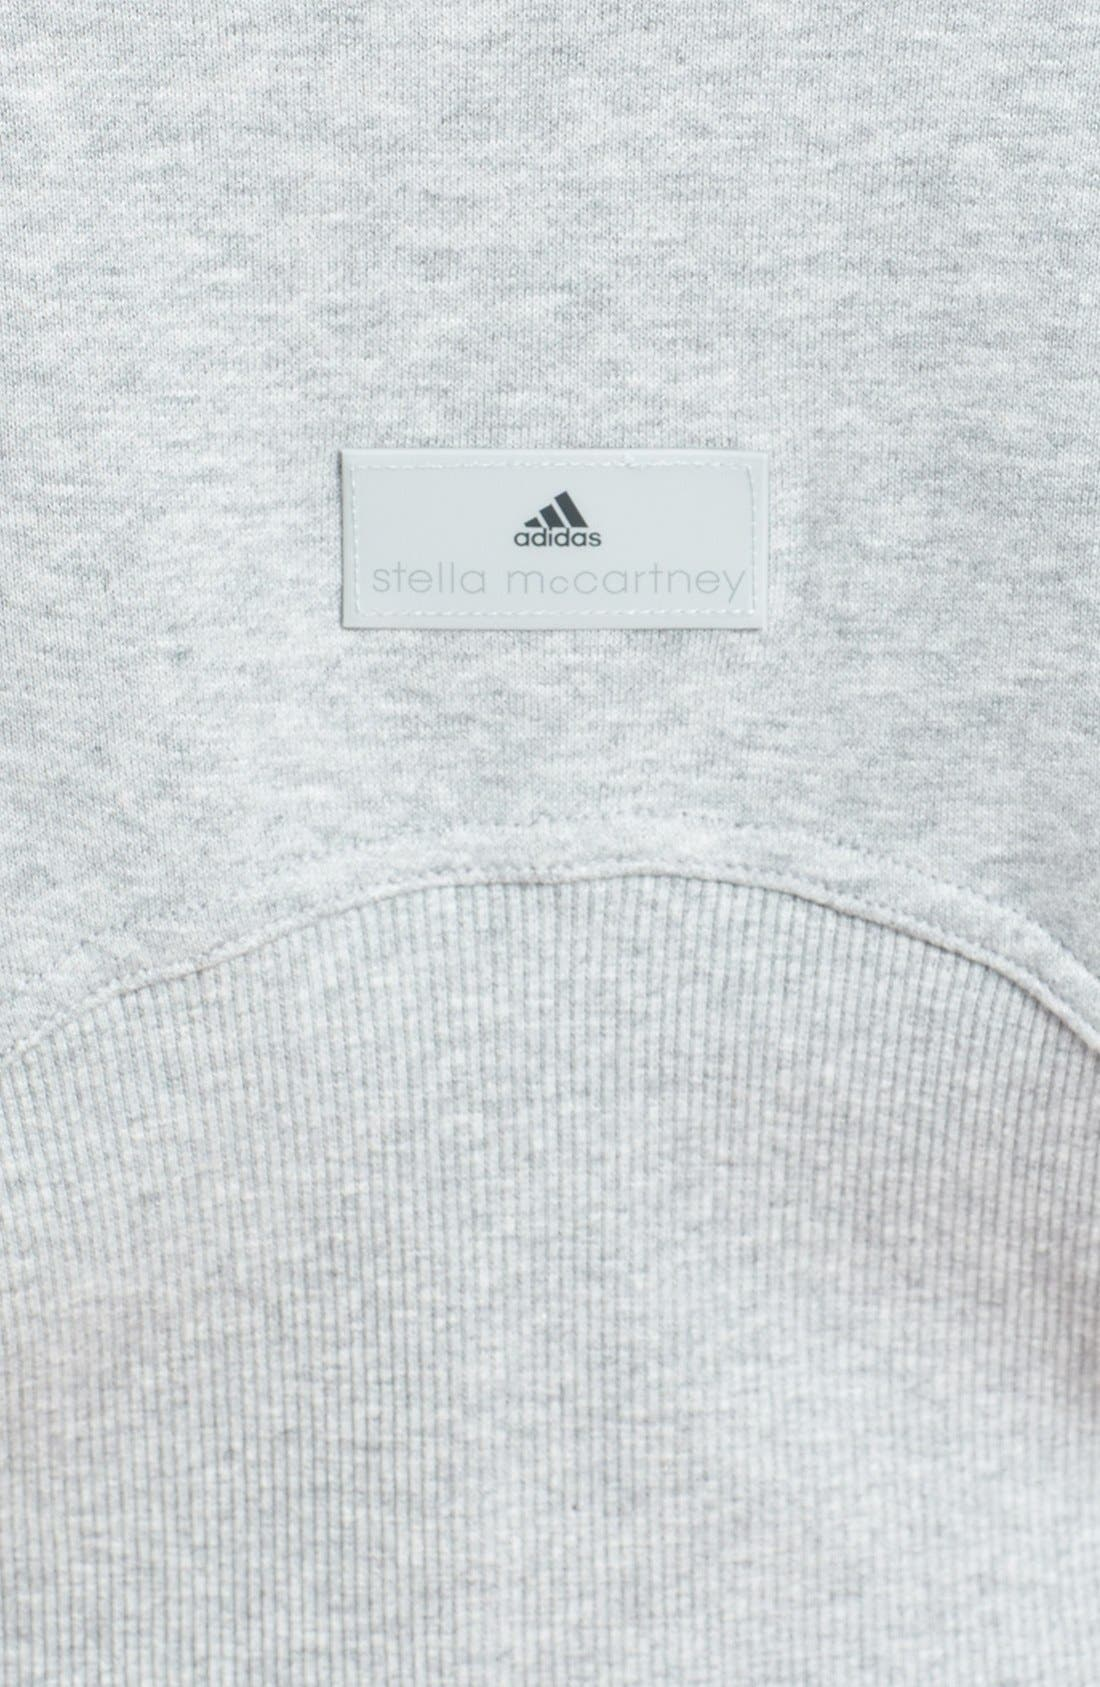 Alternate Image 3  - adidas by Stella McCartney 'Studio' French Terry Crop Hoodie